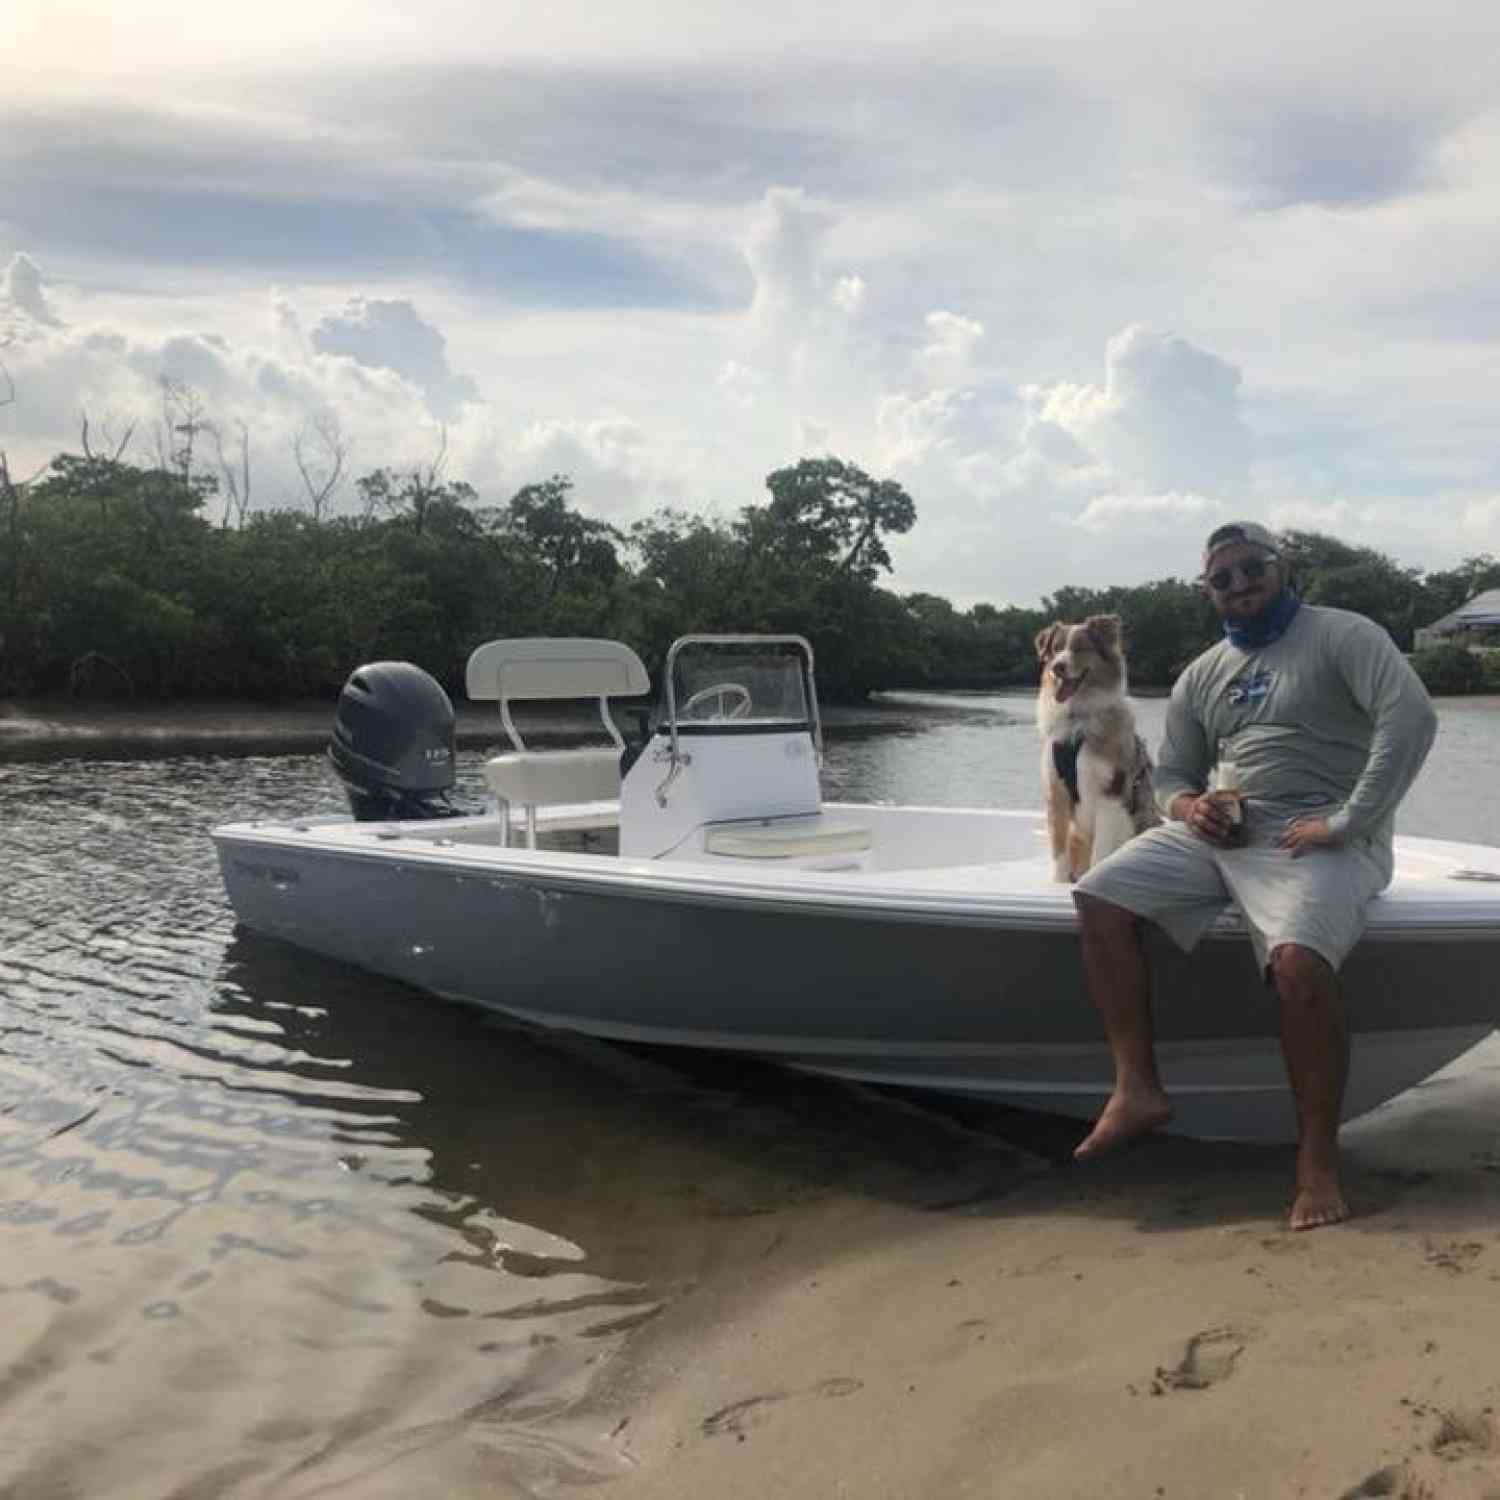 Title: Break in ride - On board their Sportsman Island Bay 20 Bay Boat - Location: Ft.lauderdale. Participating in the Photo Contest #SportsmanMarch2019